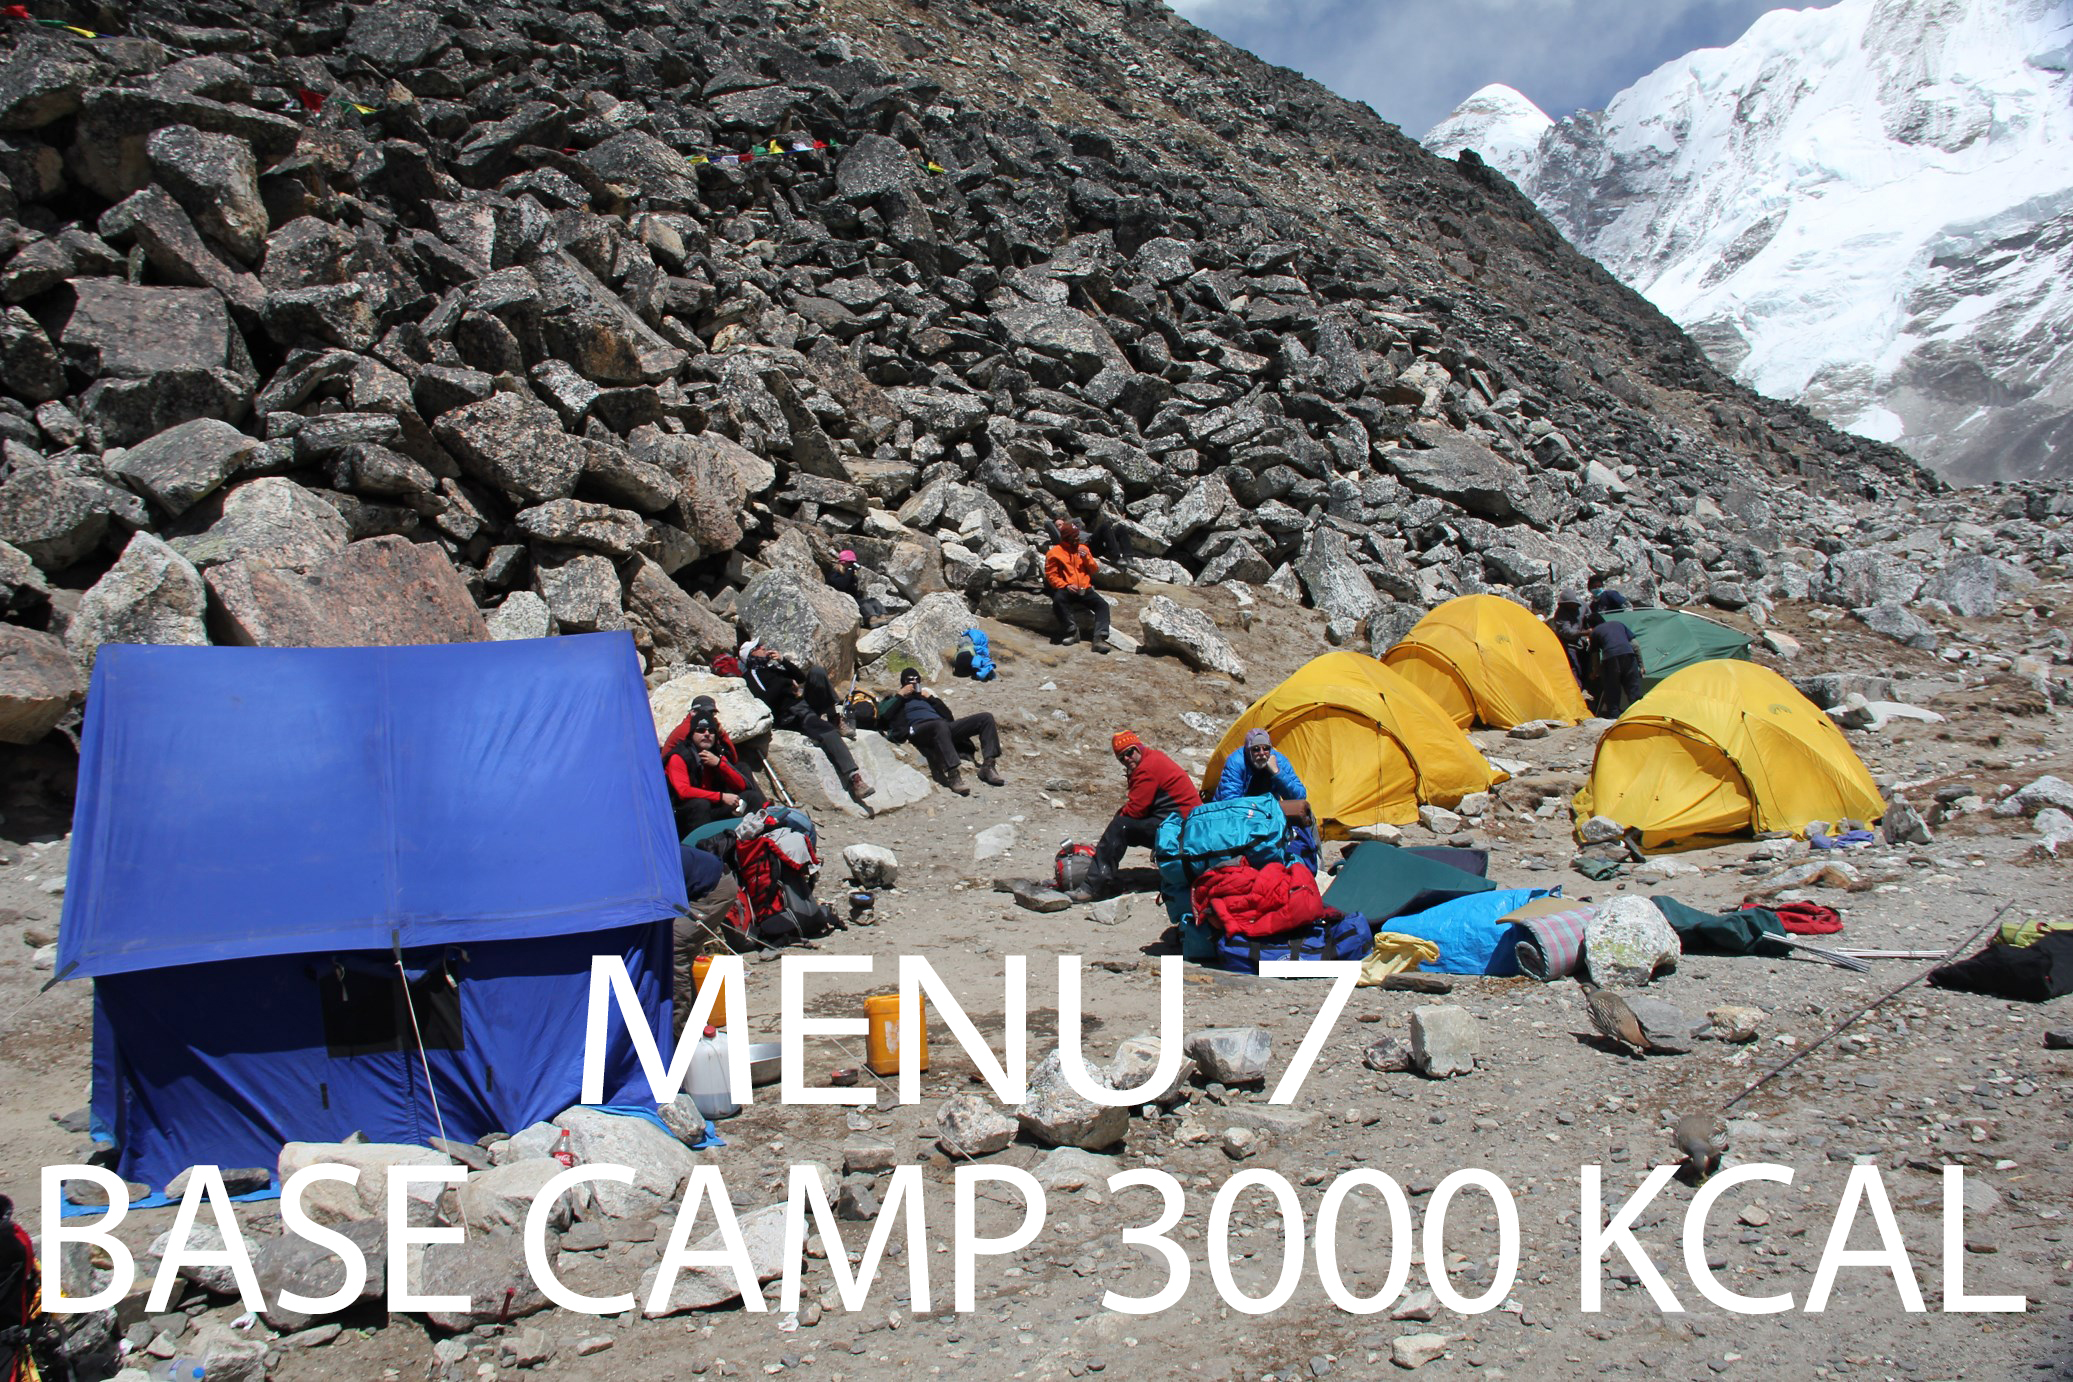 Base Camp EXTRA Menu 7 - 3000 Kcal